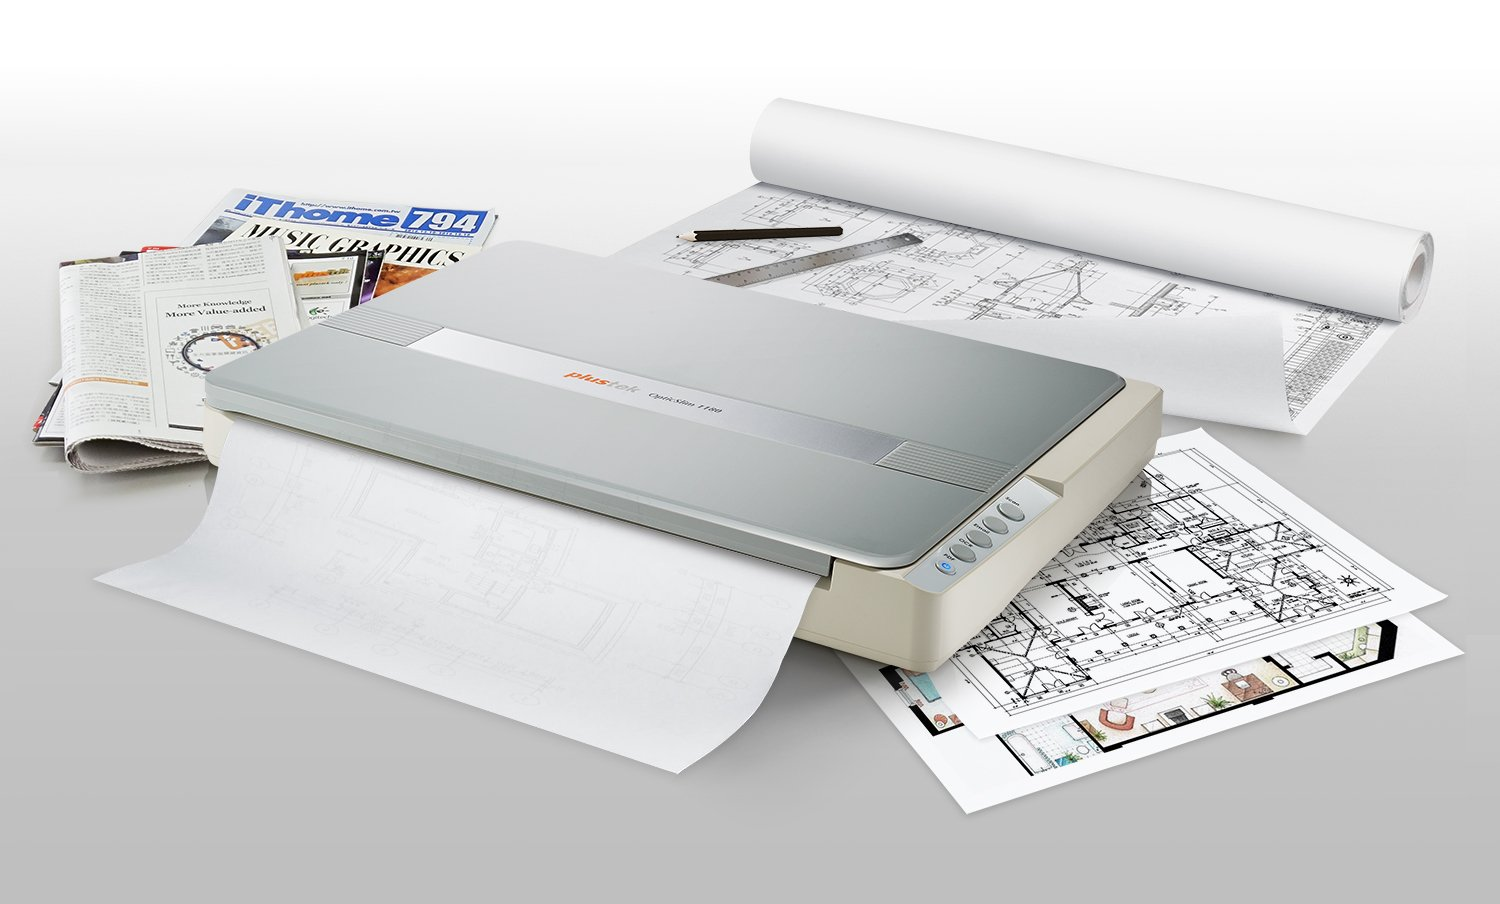 Plustek A3 Flatbed Scanner OS 1180 : 11.7x17 Large Format scan Size for Blueprints and Document. Design for Library, School and Soho. A3 scan for 9 sec, Support Mac and PC by Plustek